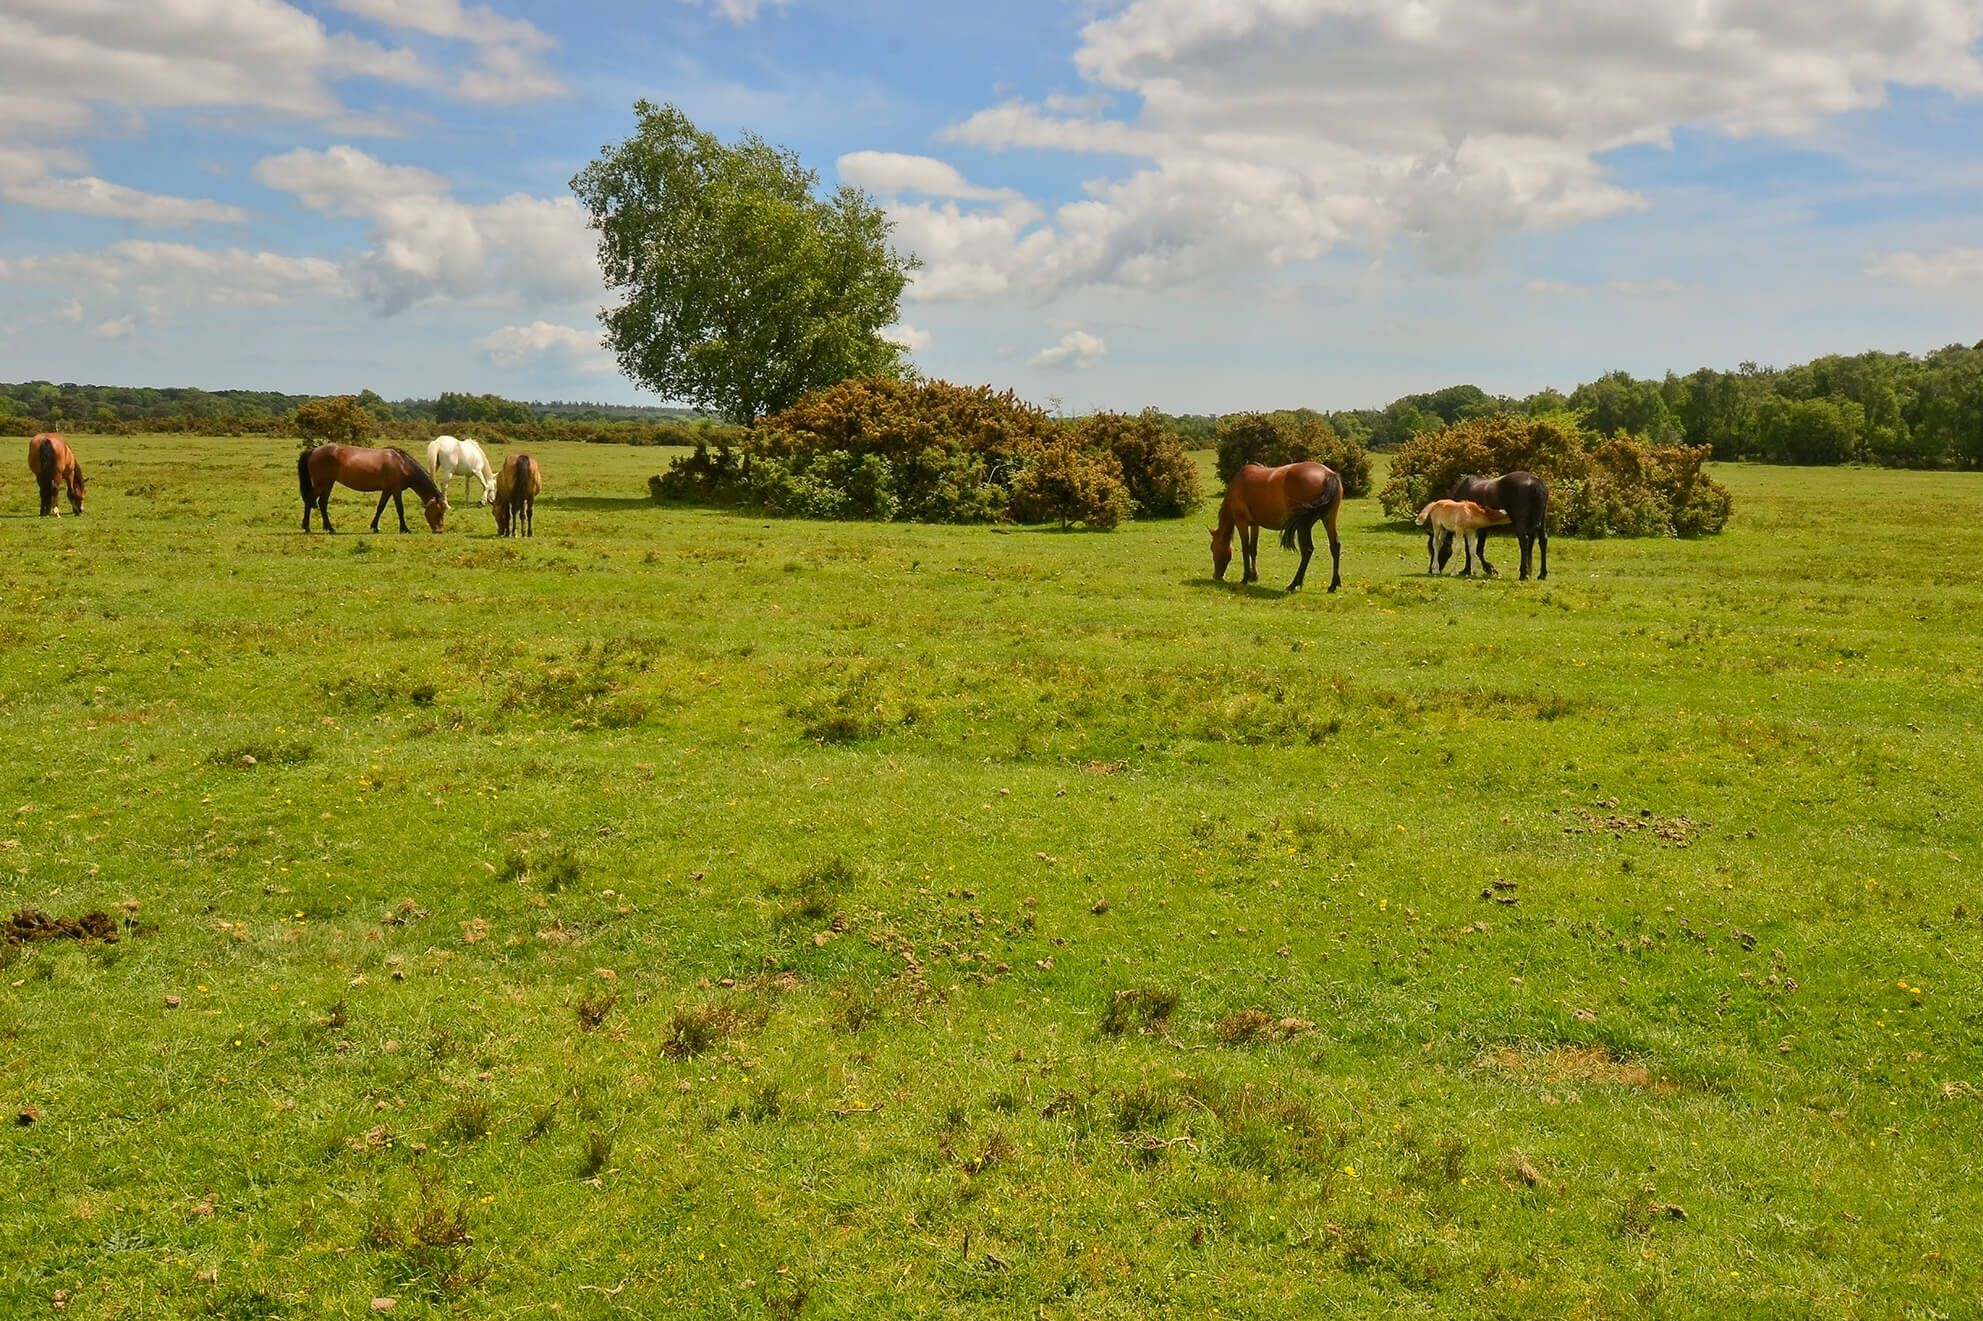 Wild horses in the New Forest National Park